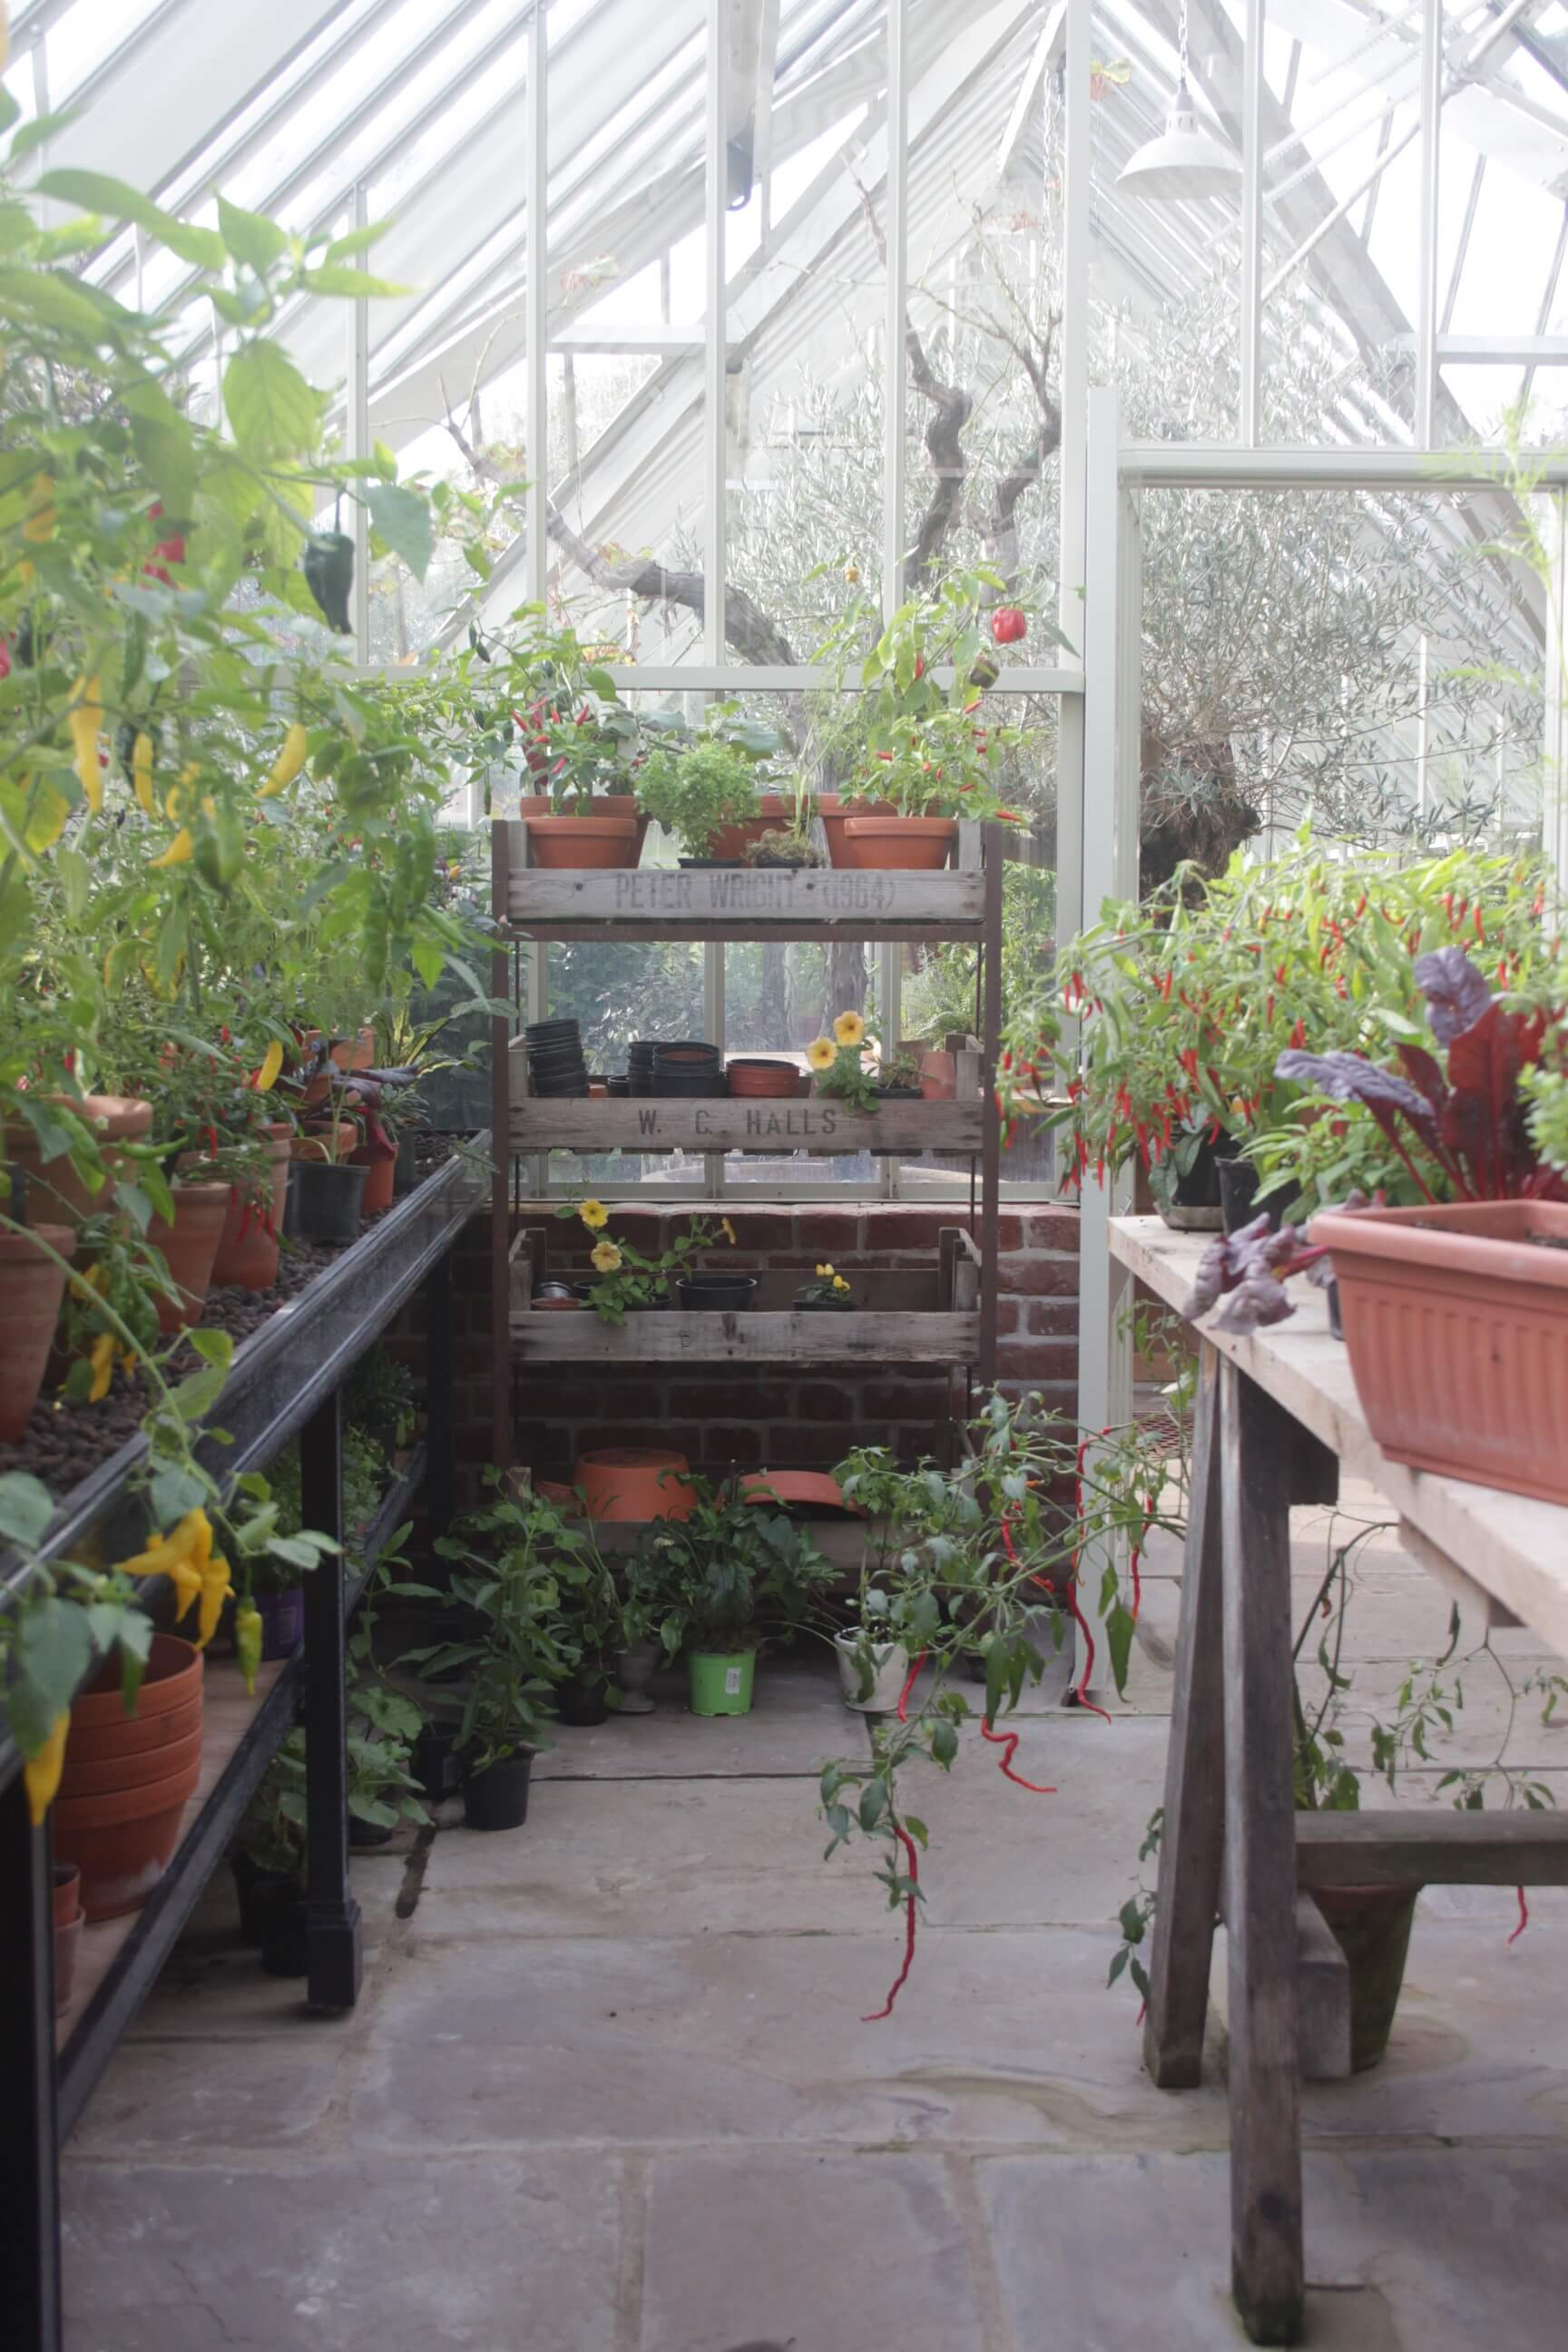 Inside a working growing greenhouse